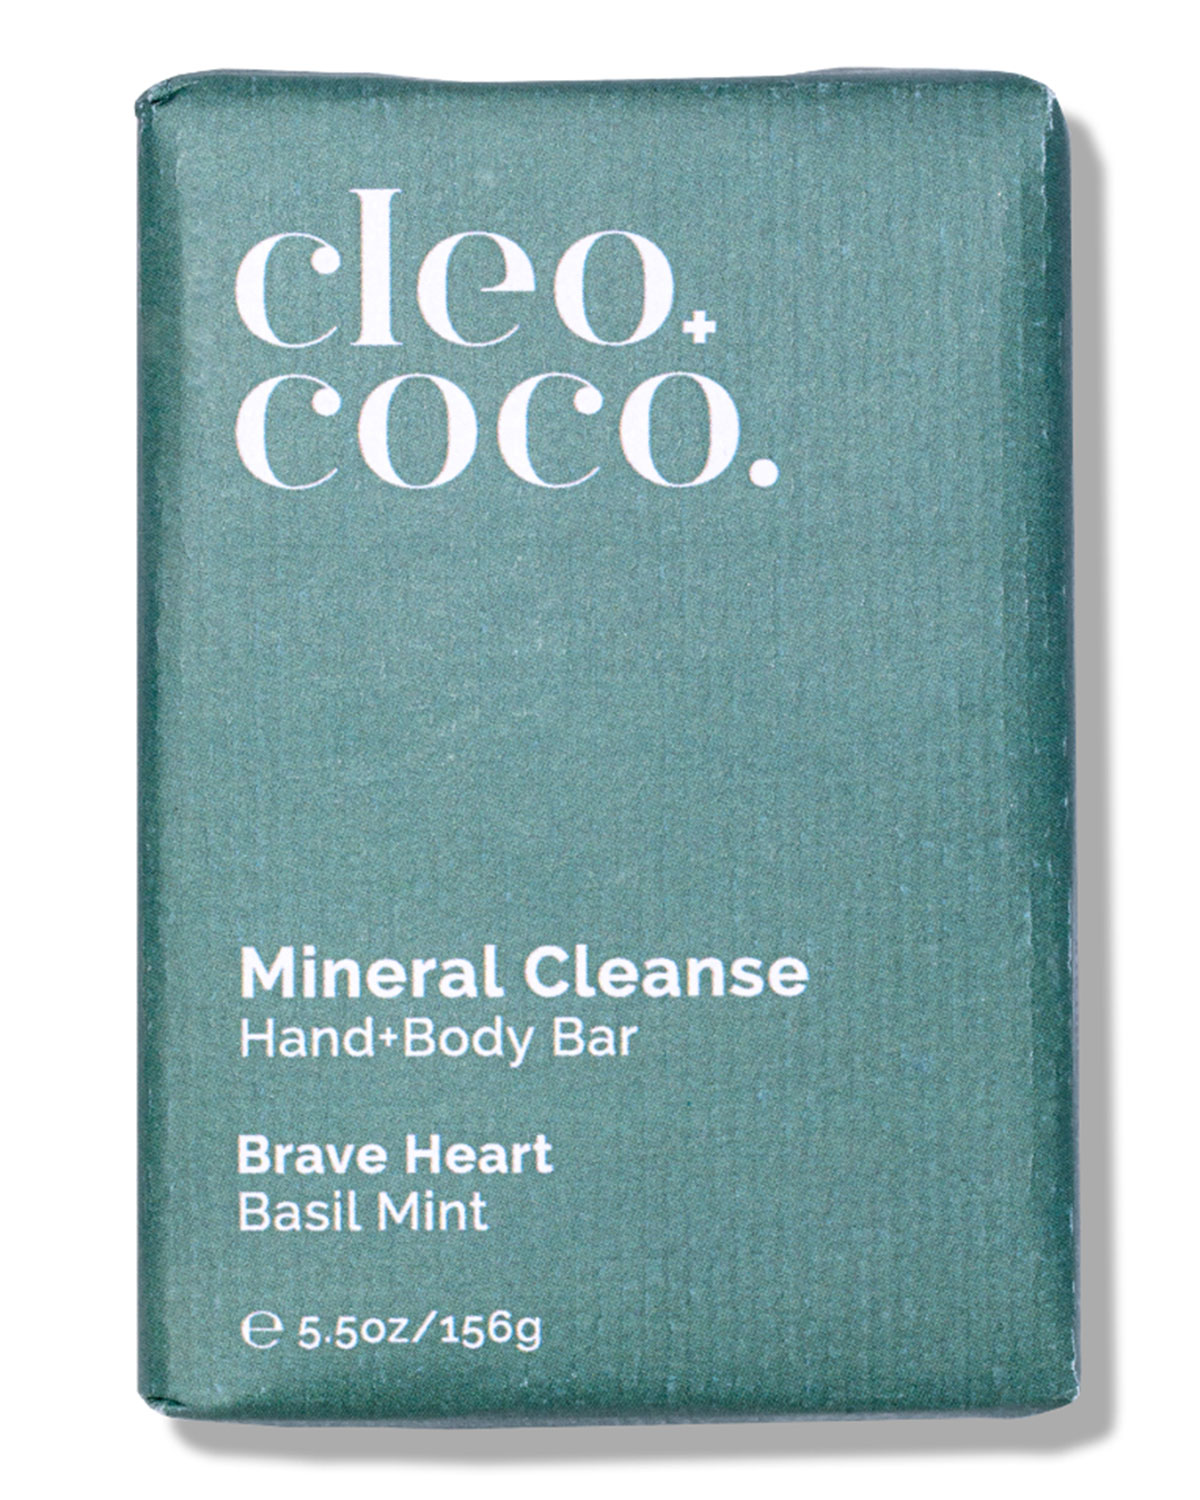 5.5 oz. Mineral Cleanse Hand + Body Bar